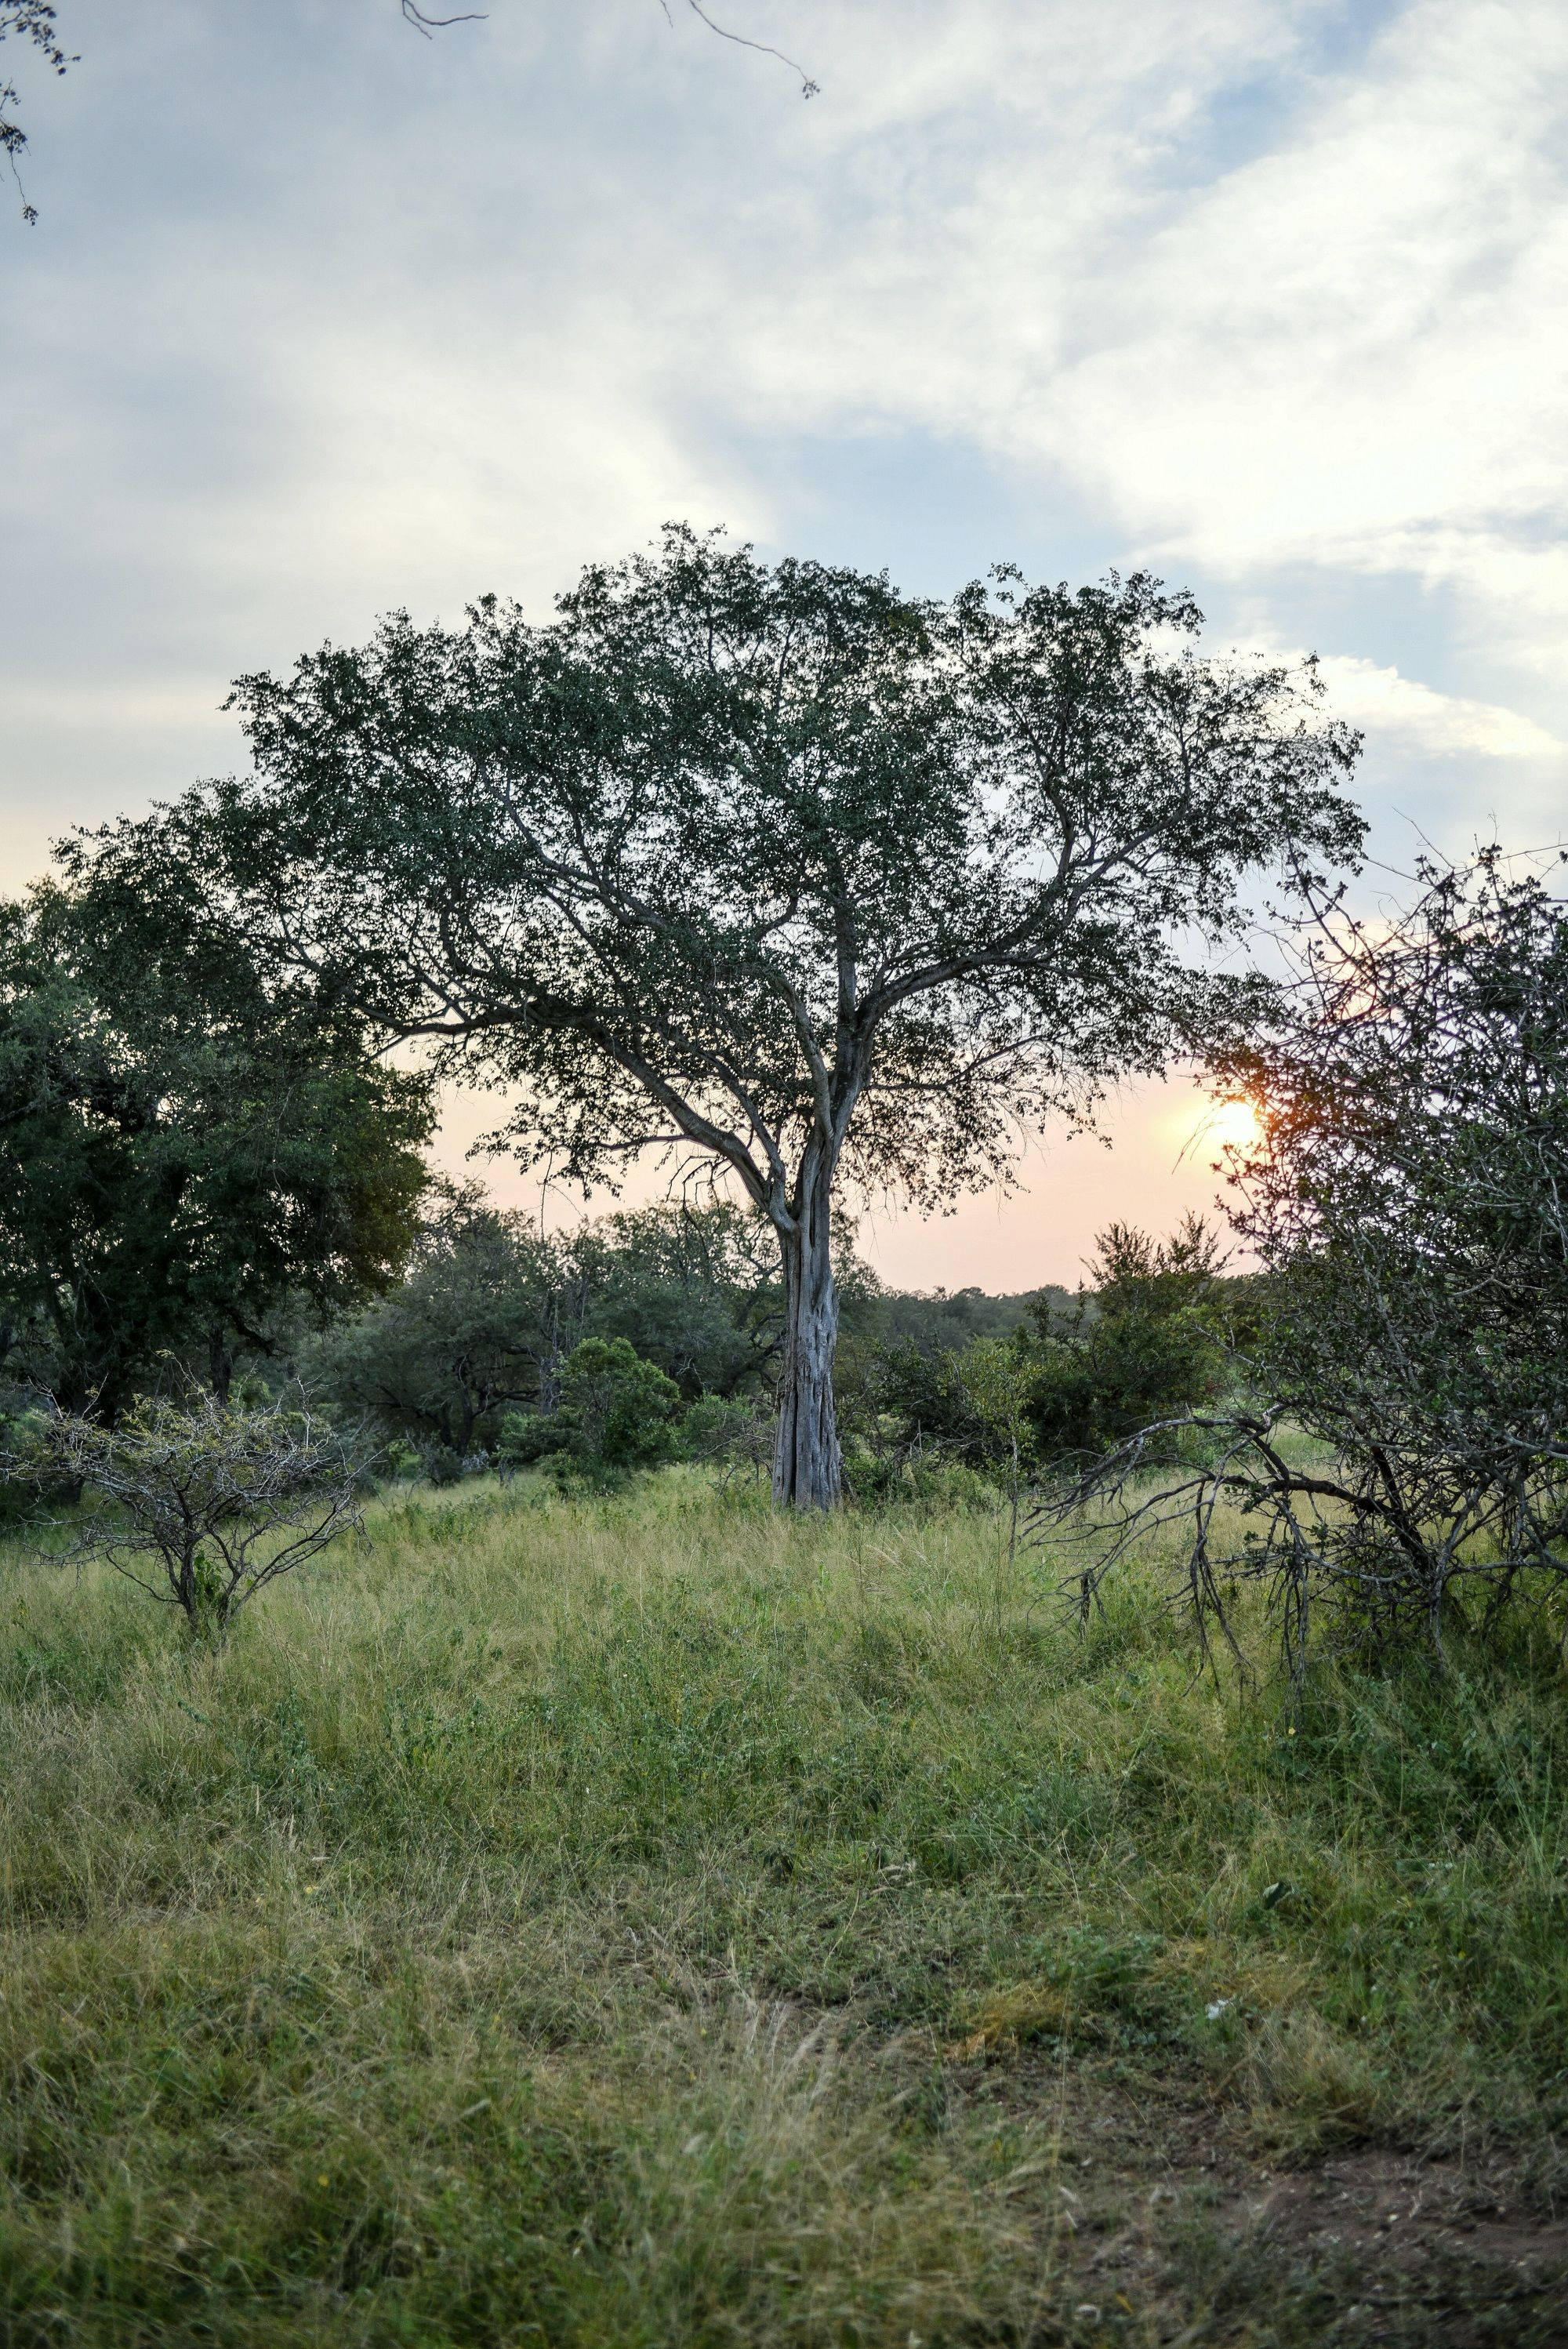 29+ Lion sands game reserve reviews collection